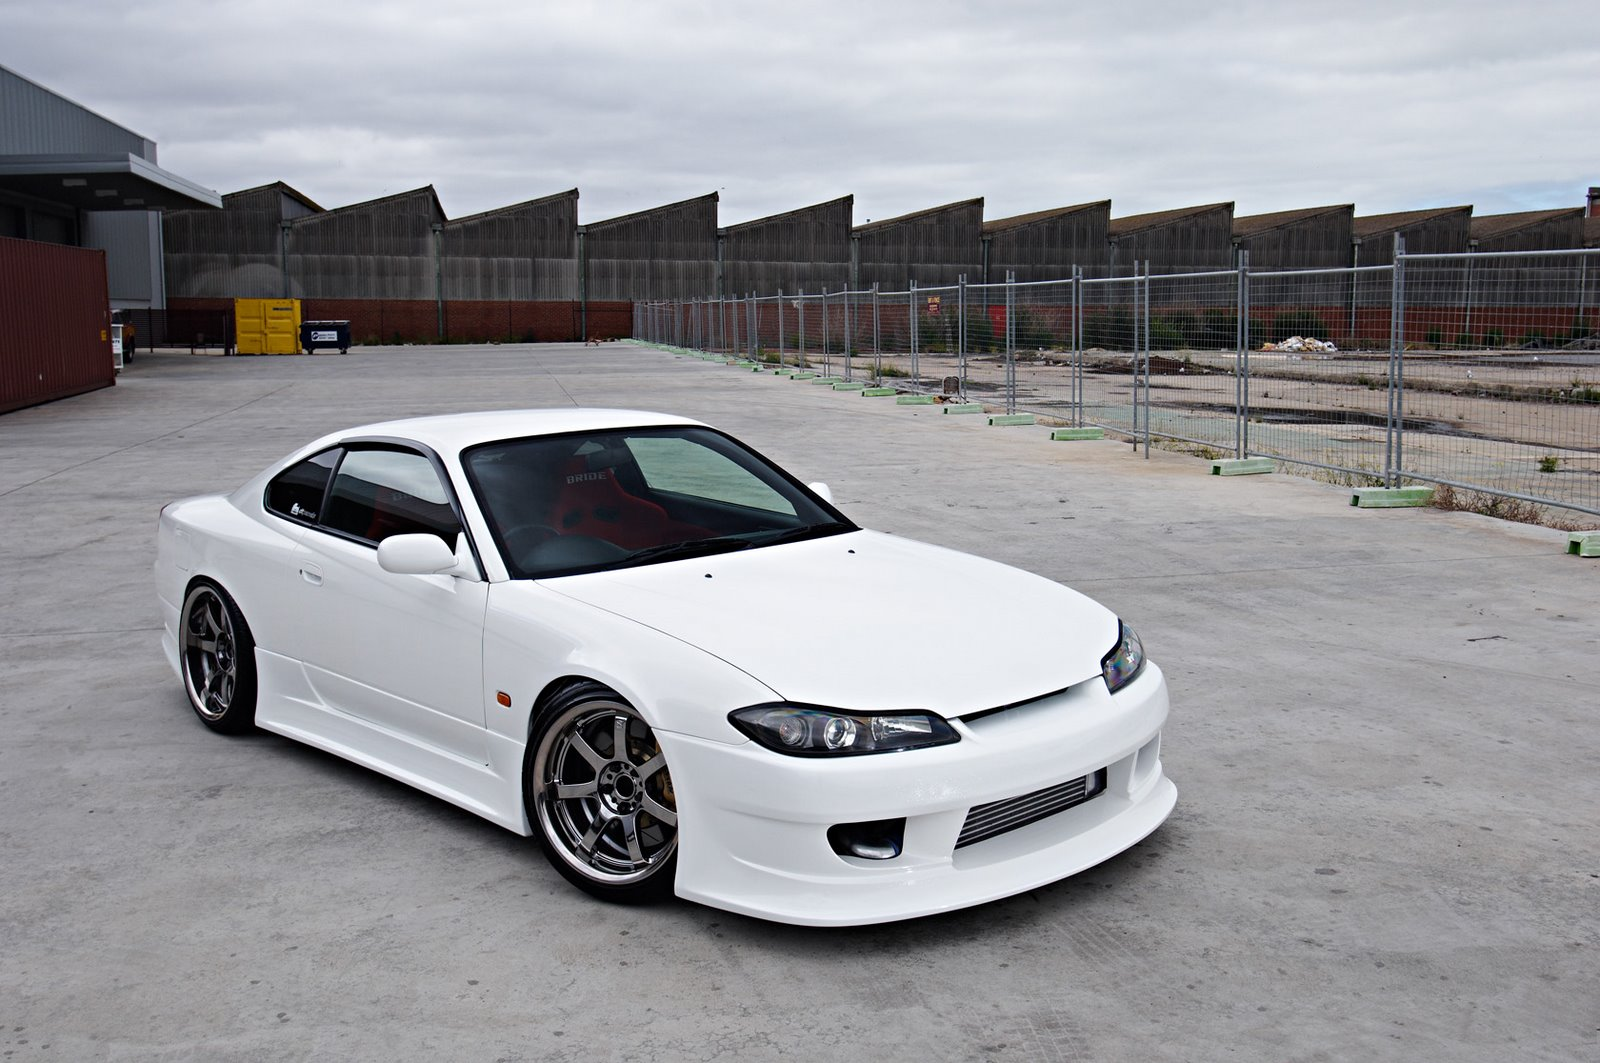 nissan s15 silvia photos reviews news specs buy car. Black Bedroom Furniture Sets. Home Design Ideas